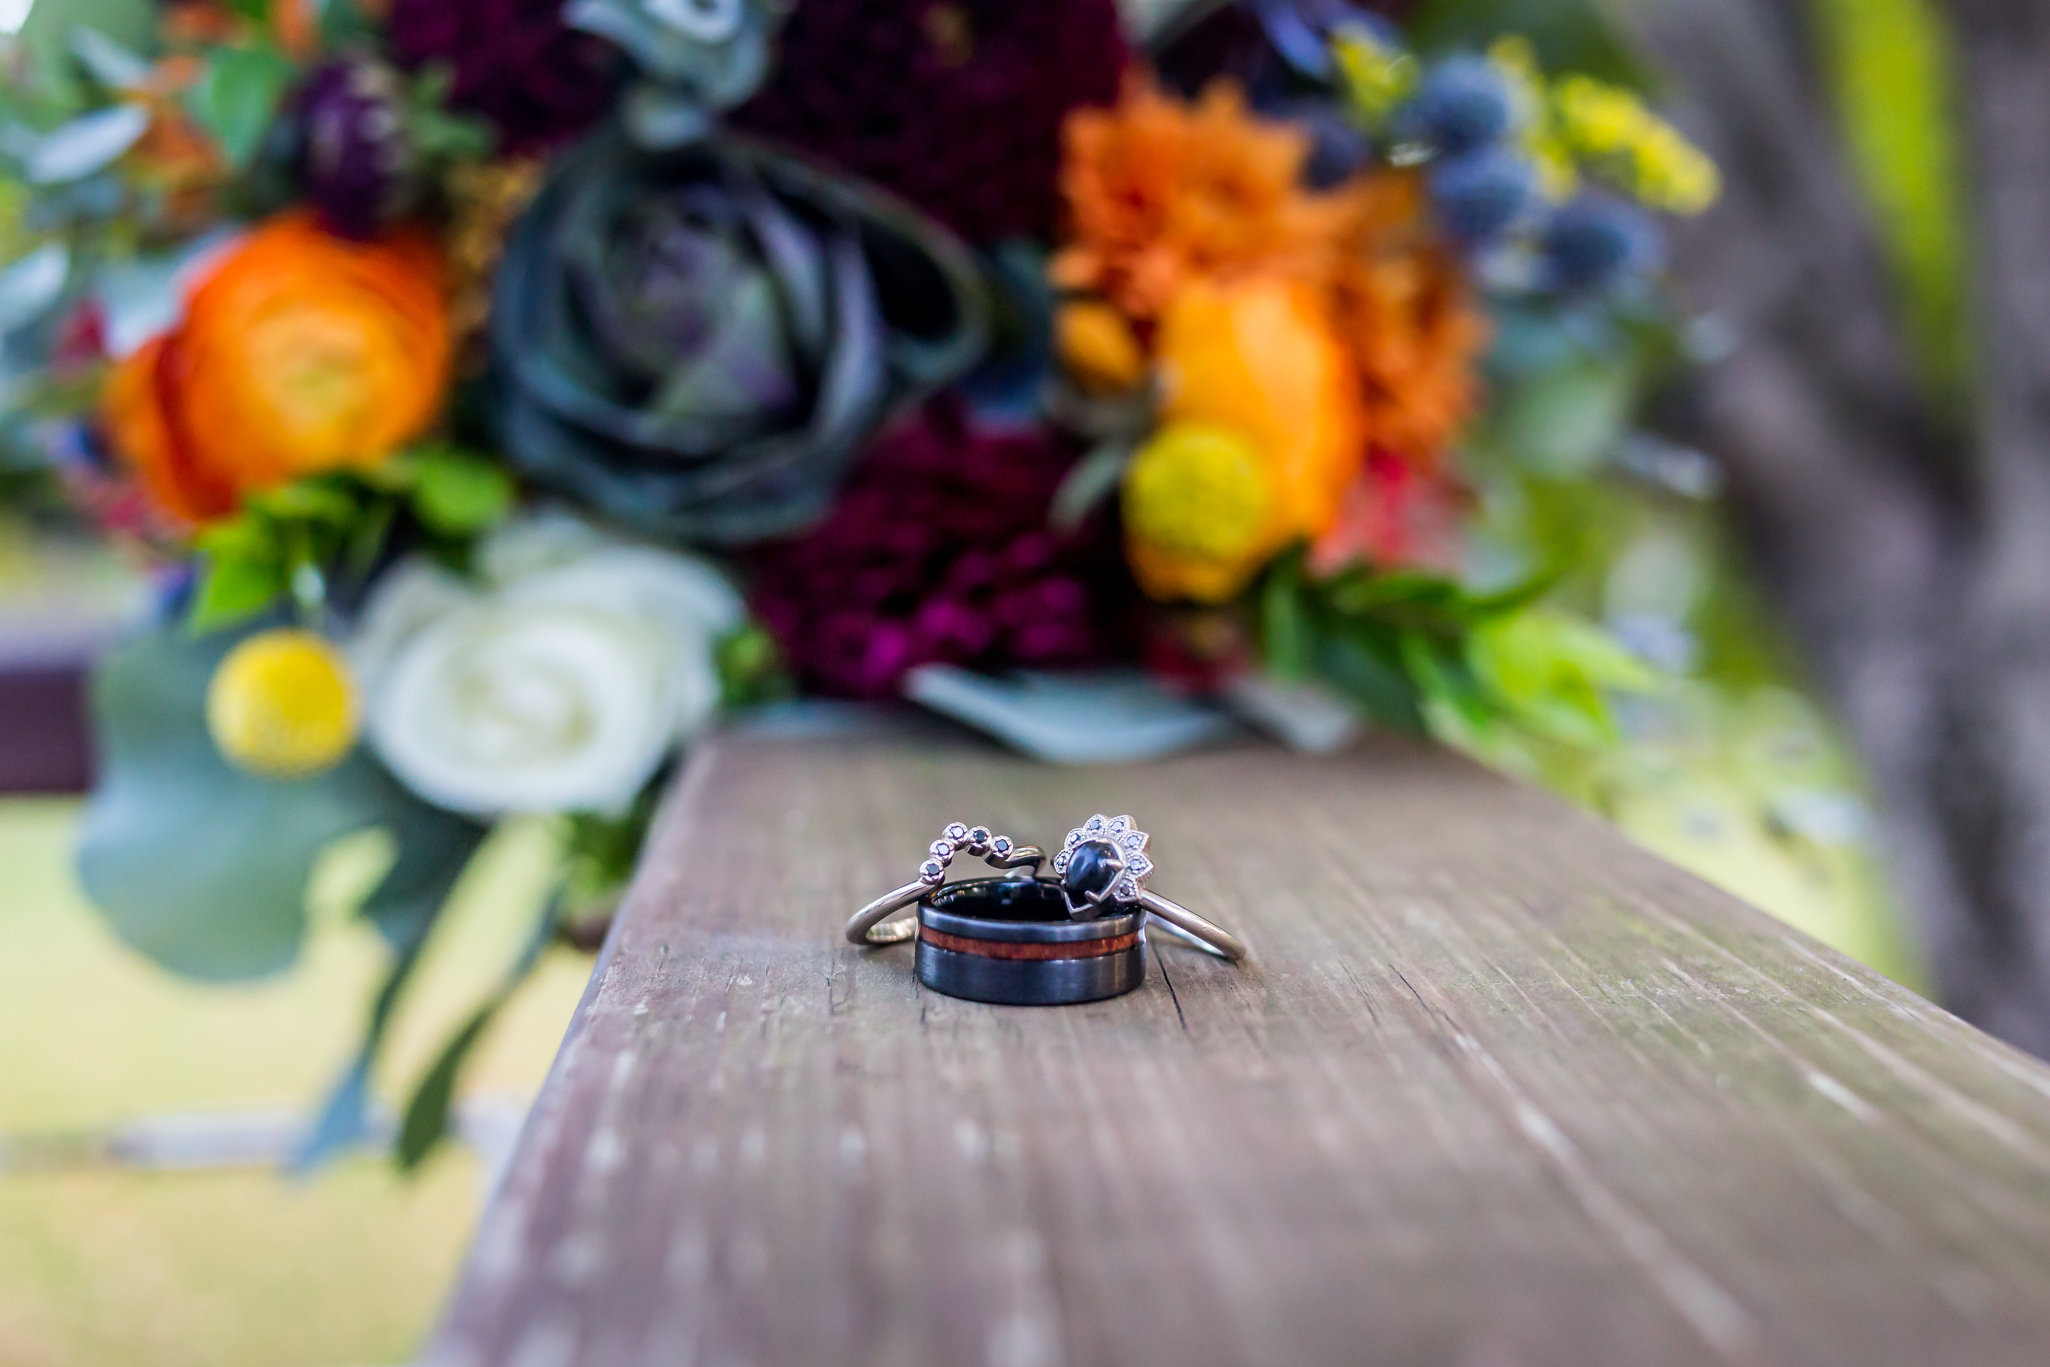 A photo of wedding rings taken during a fall wedding in Indiana